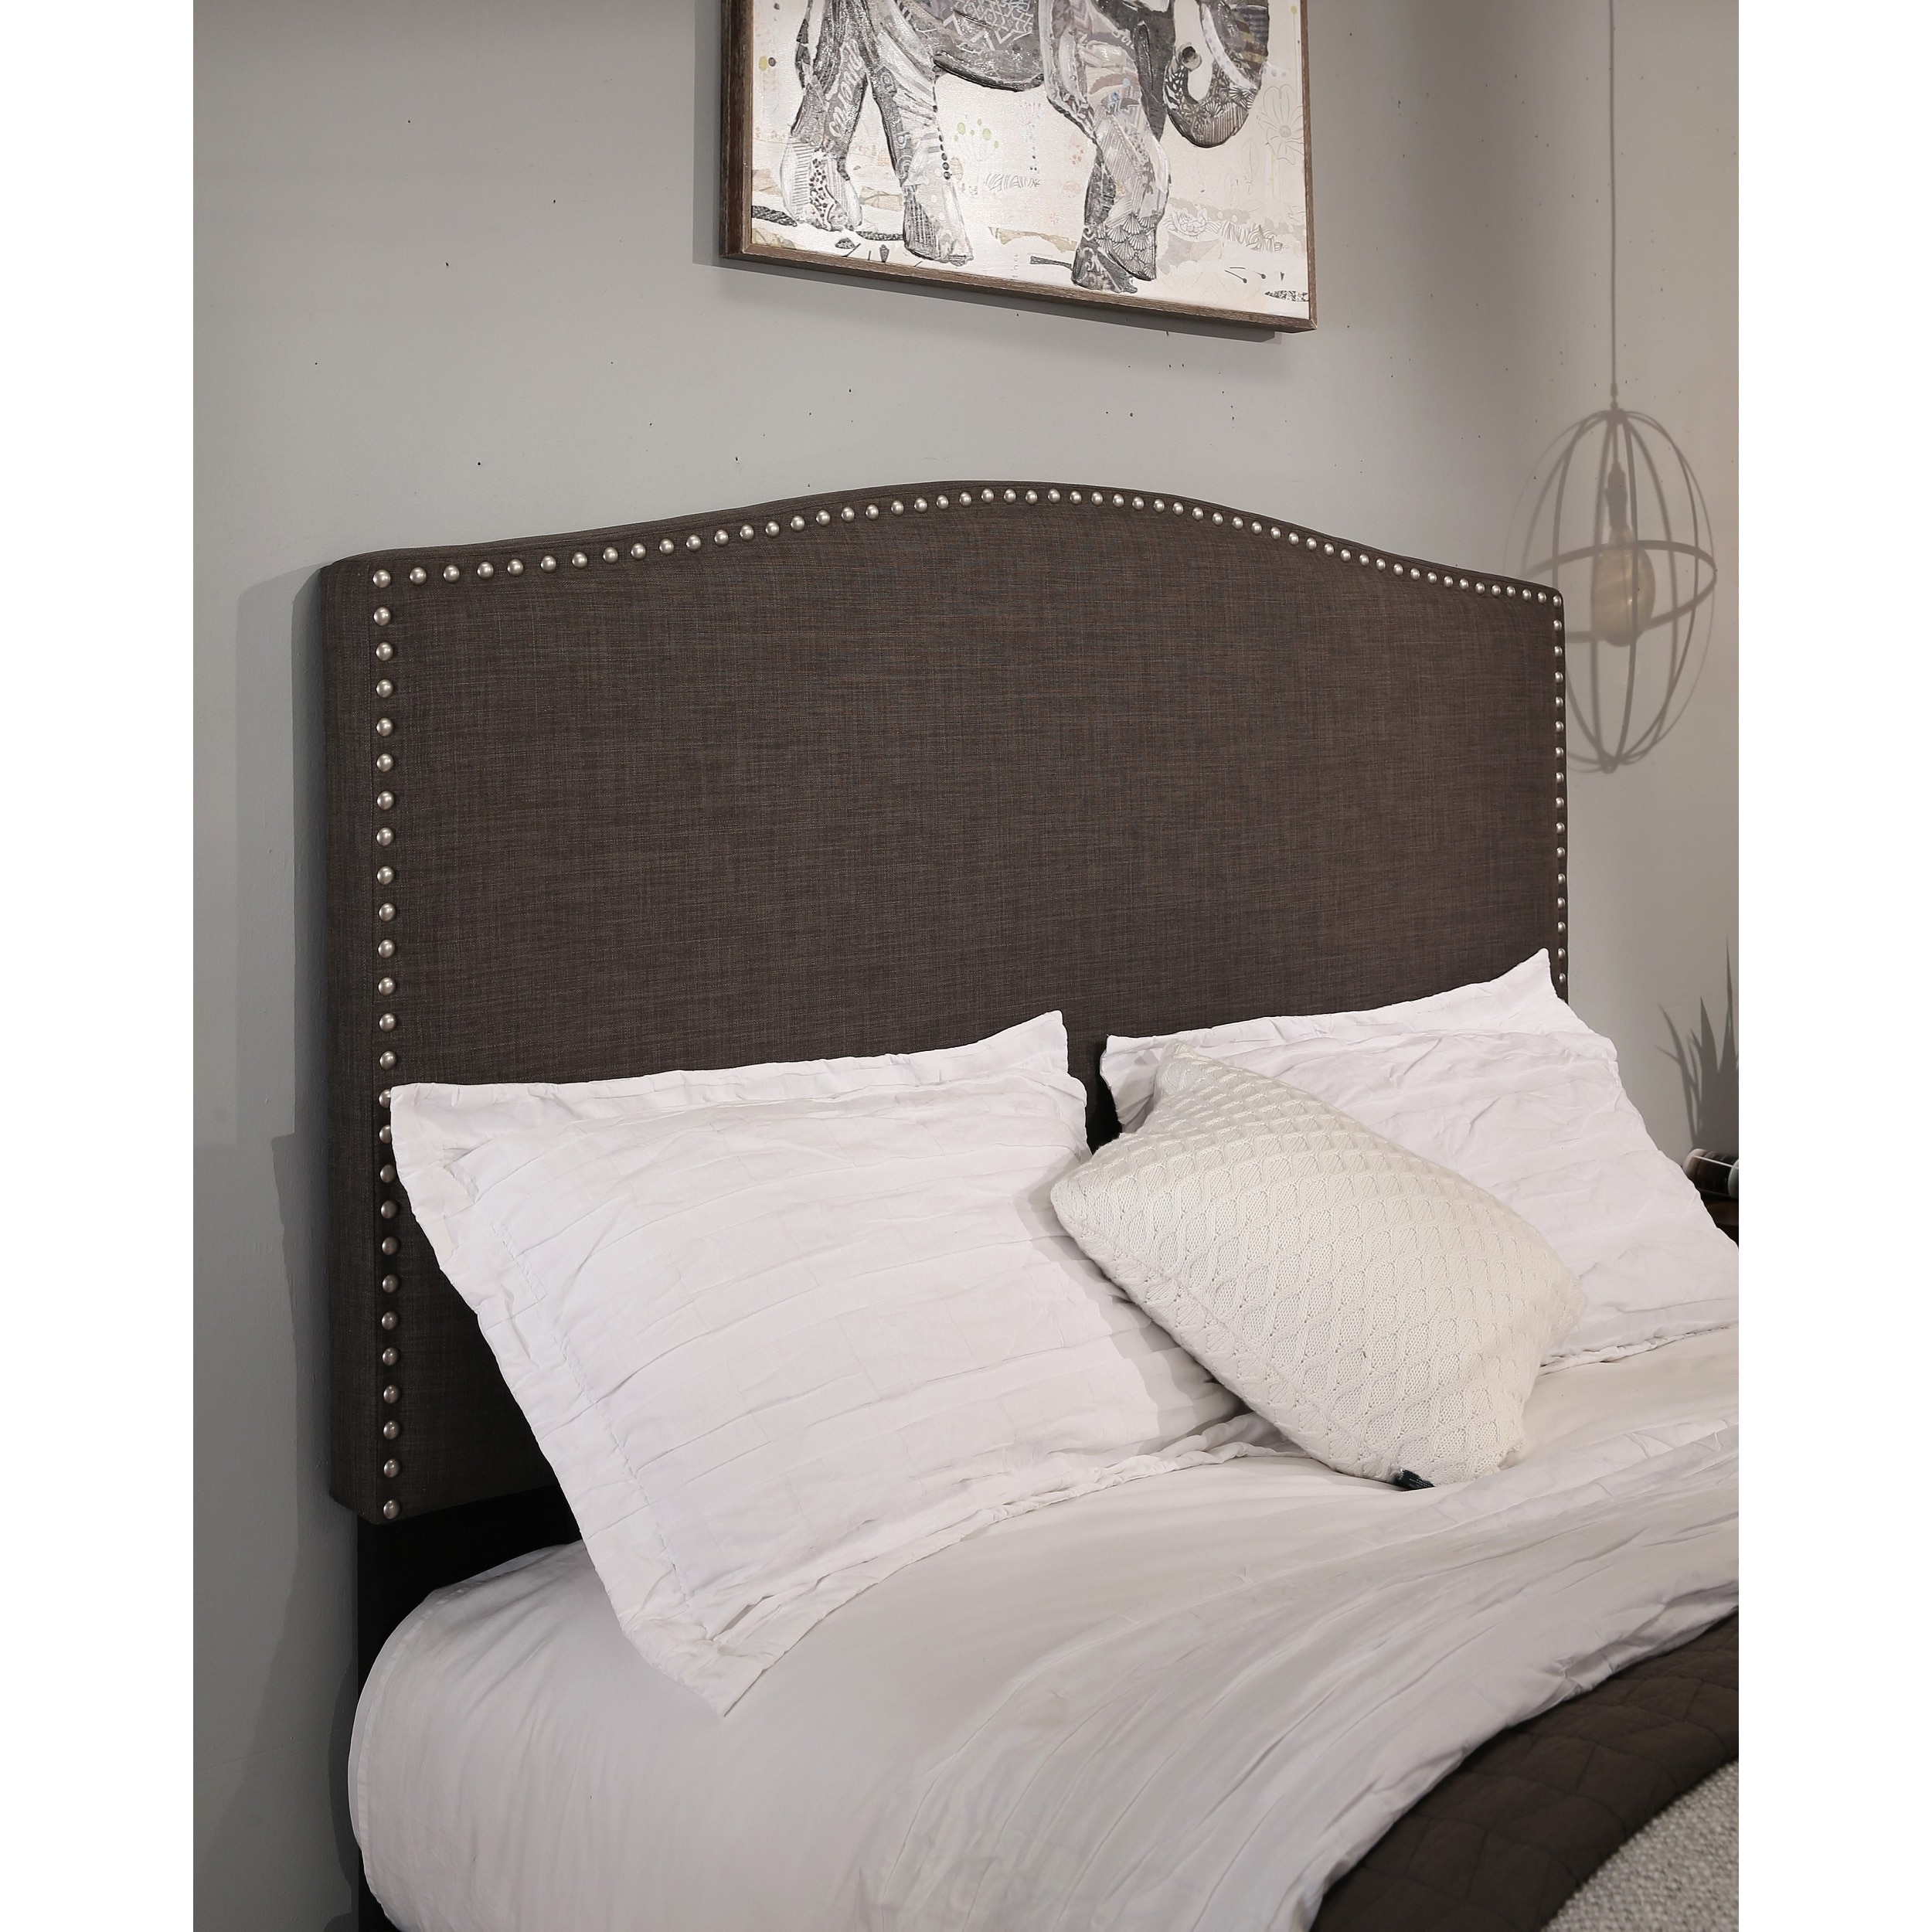 grey headboard gray king headboards bed decorating tall modern jpg dazzling size velvet wonderful upholstered fabric full tufted with storage